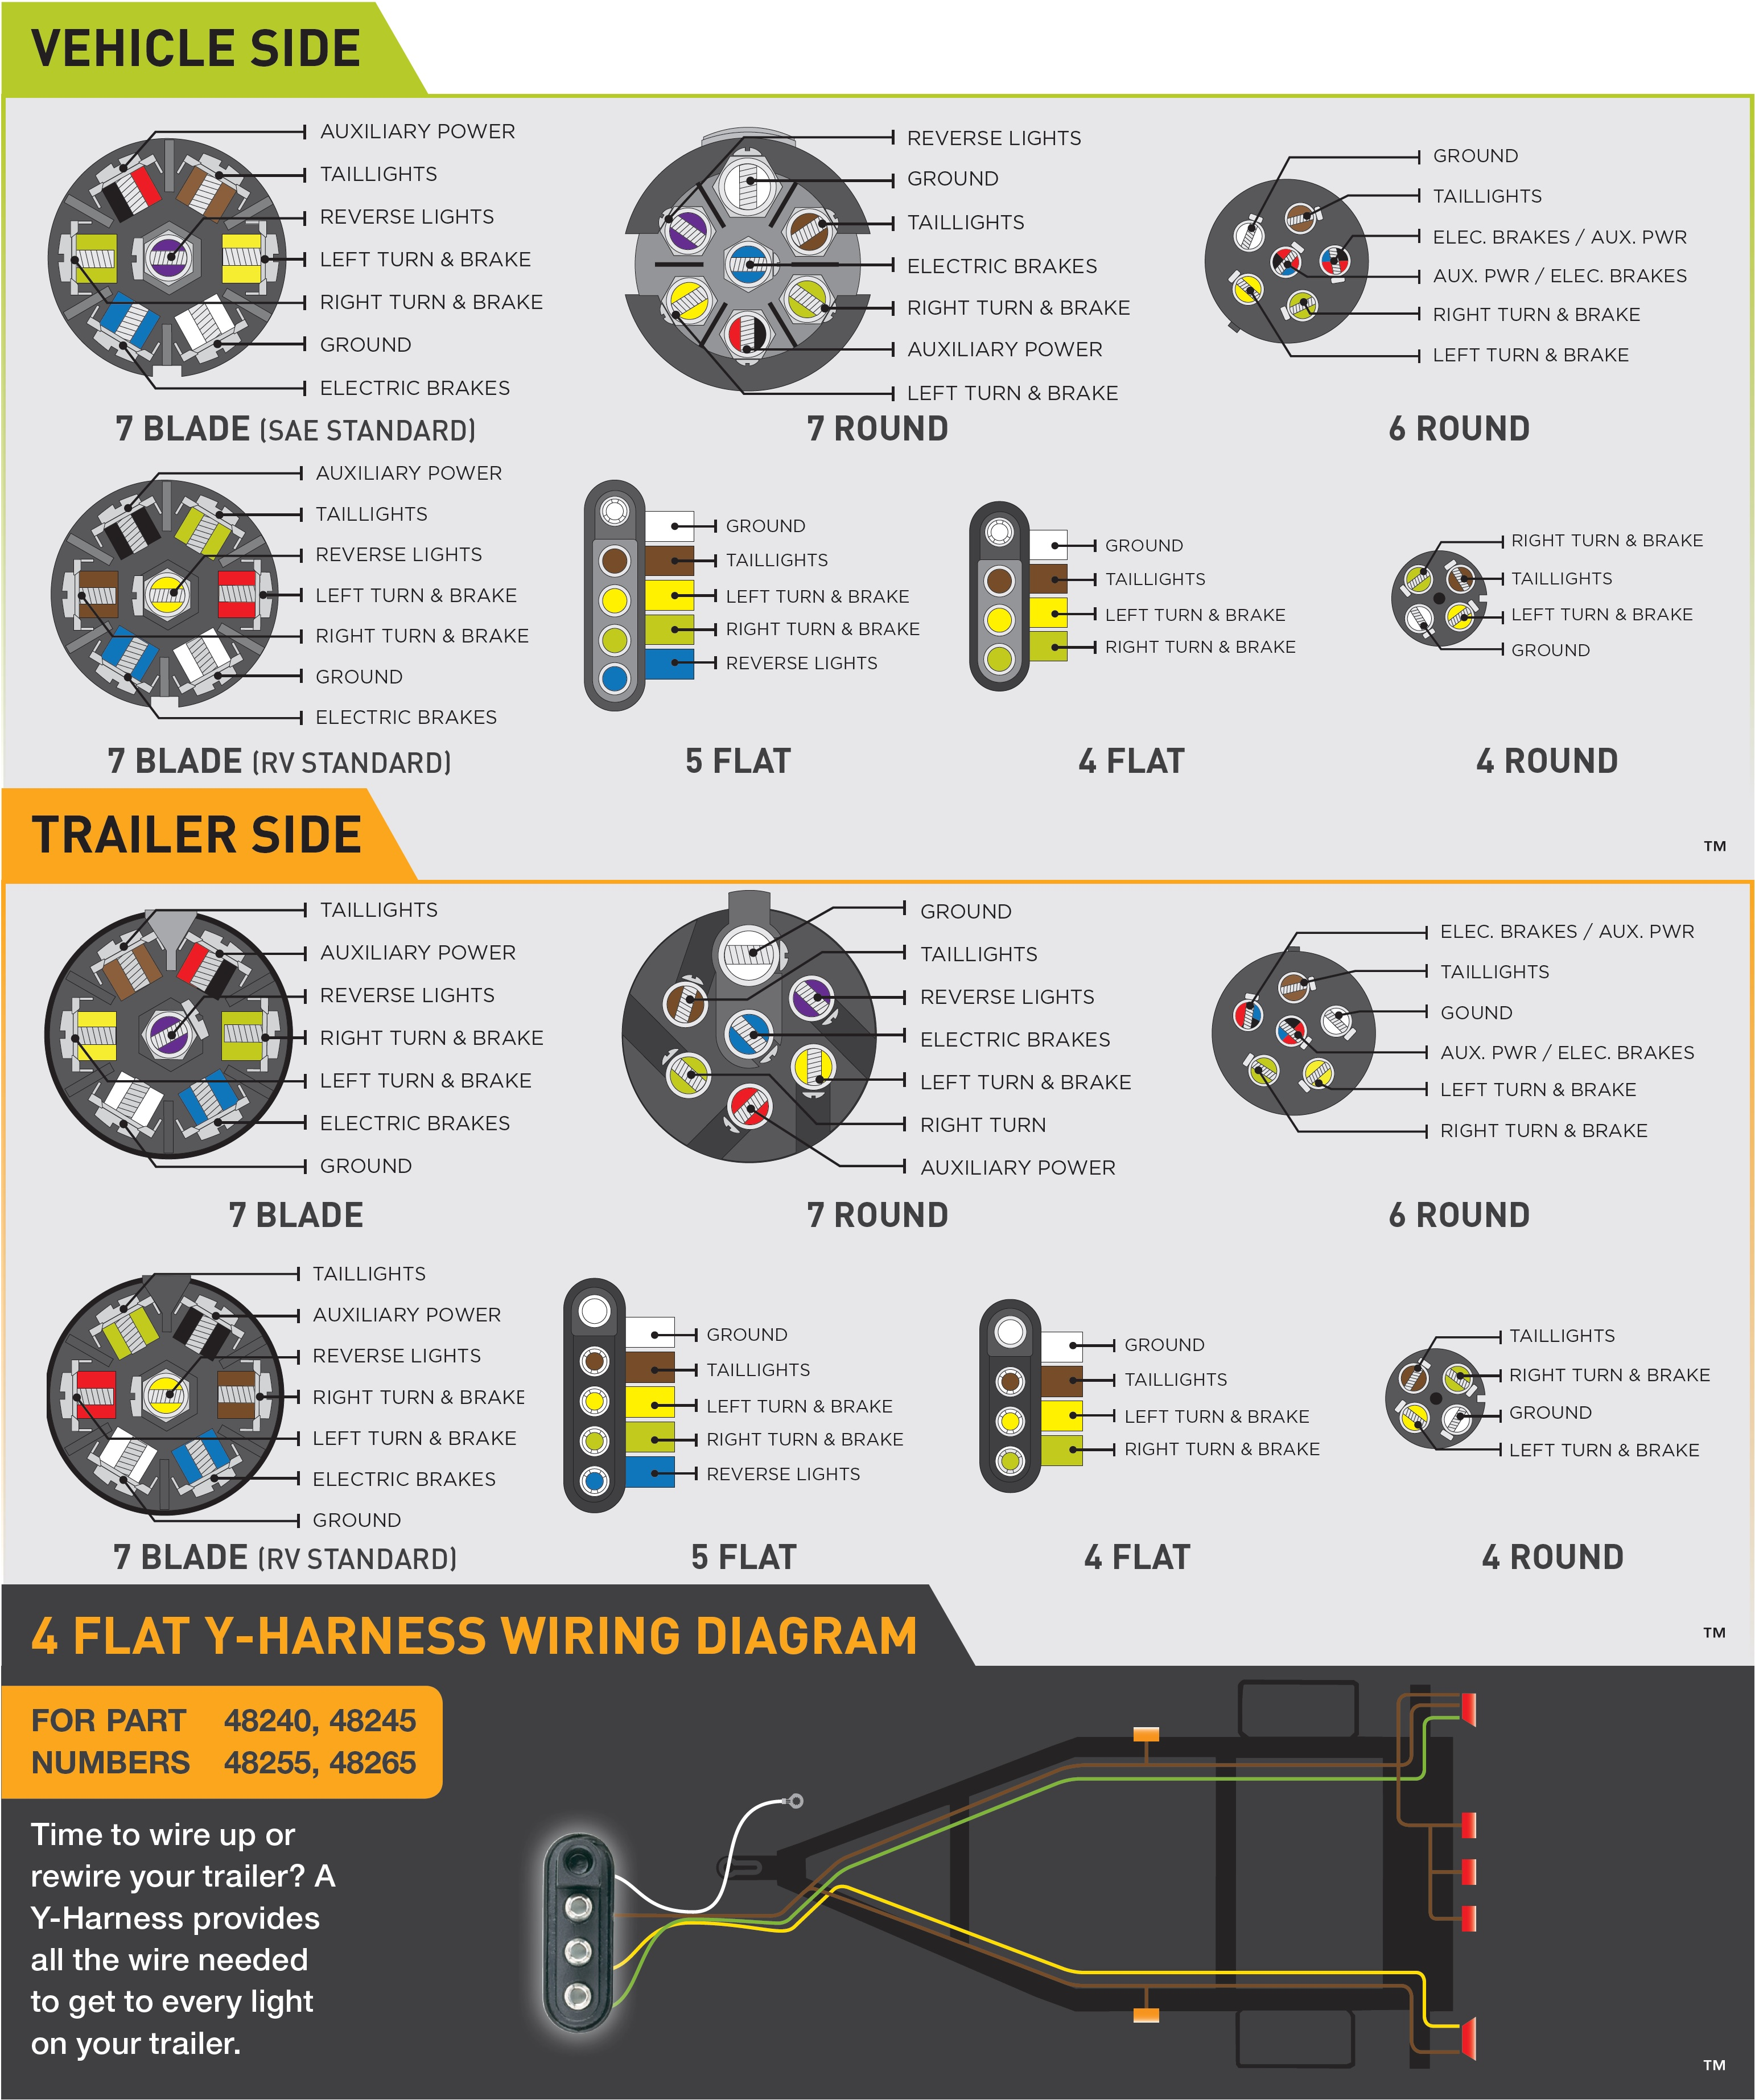 5 Pin Trailer Wiring Color Diagram - Schema Wiring Diagram Femal Pin Trailer Plug Wiring Diagram on